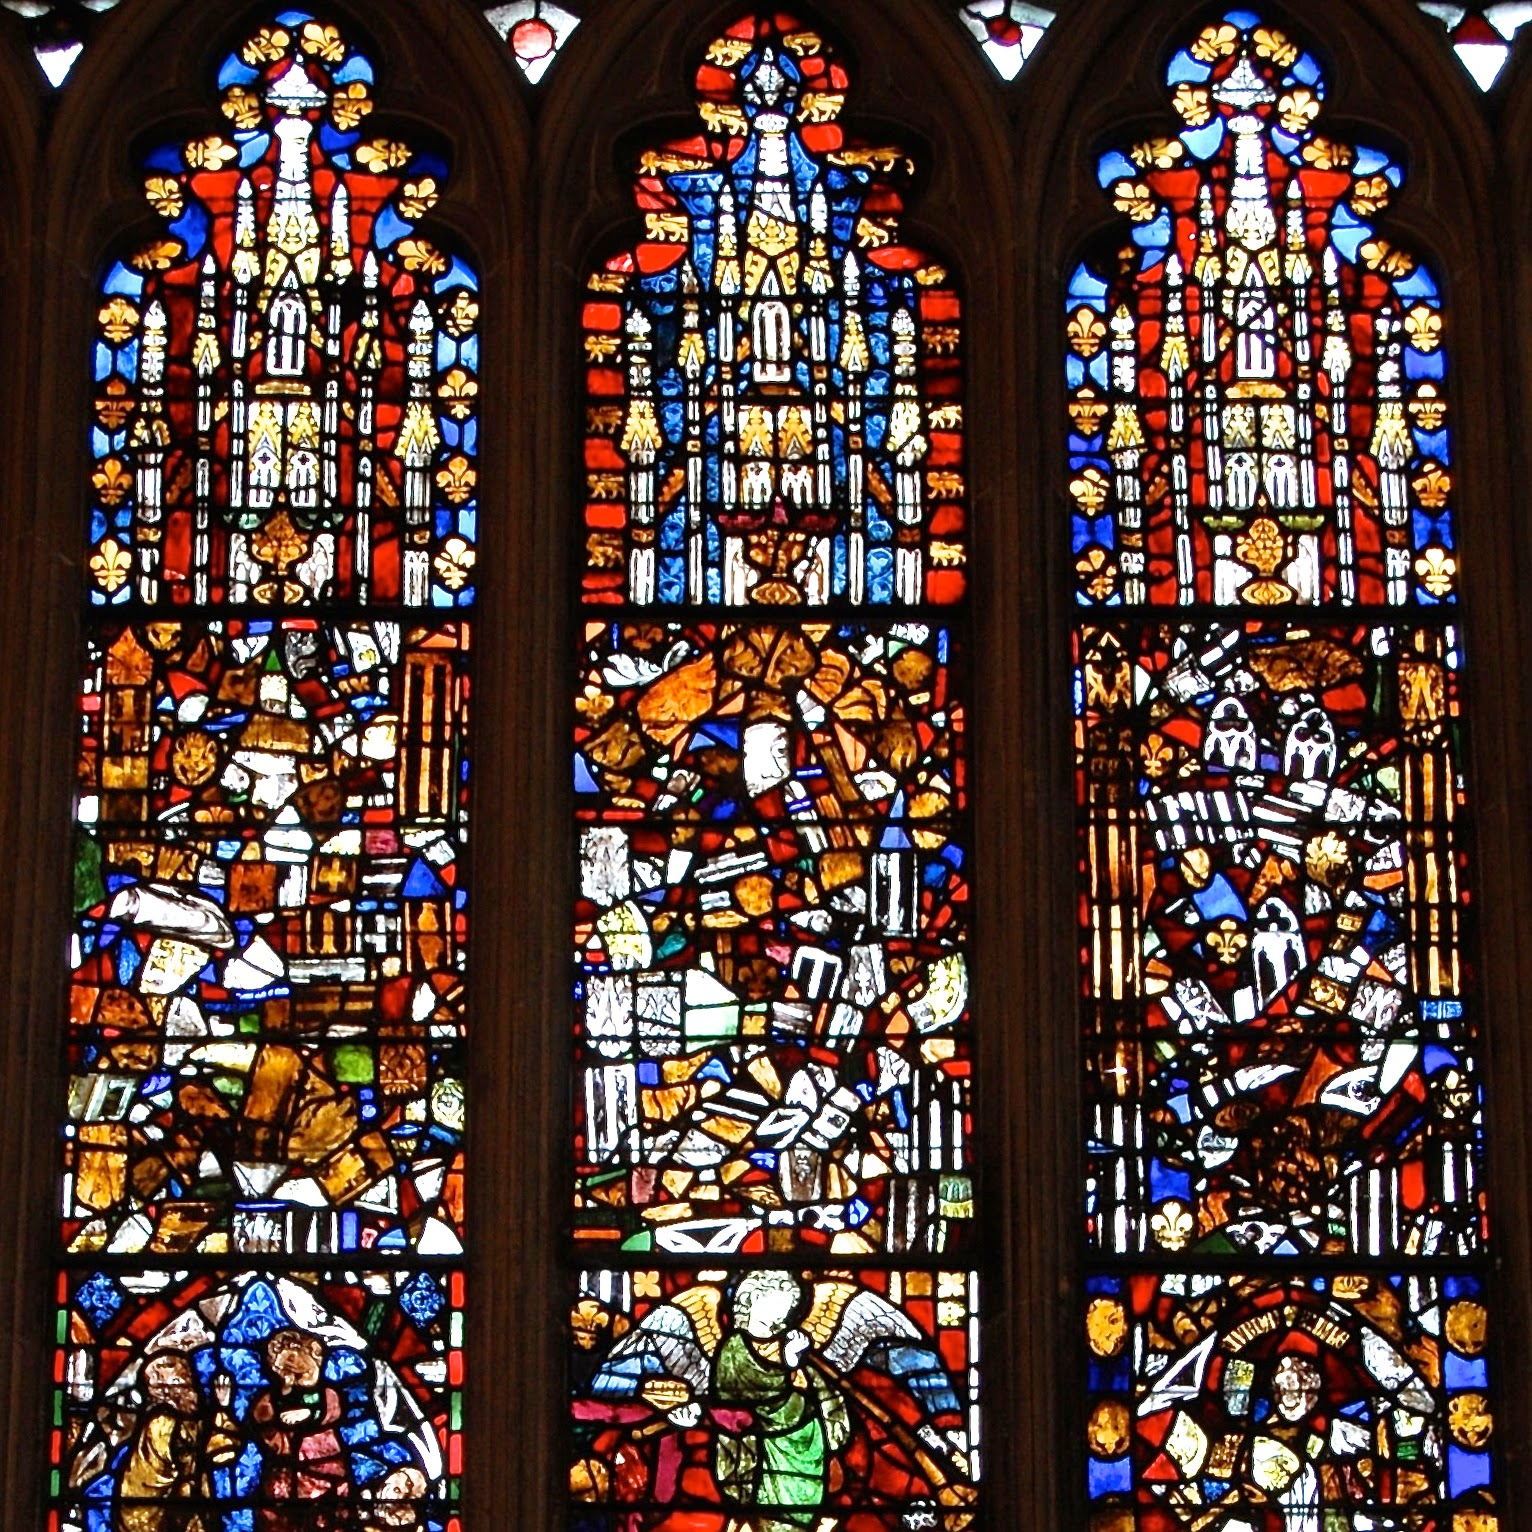 Jumbled stained glass windows in the Lady Chapel of Wells Cathedral